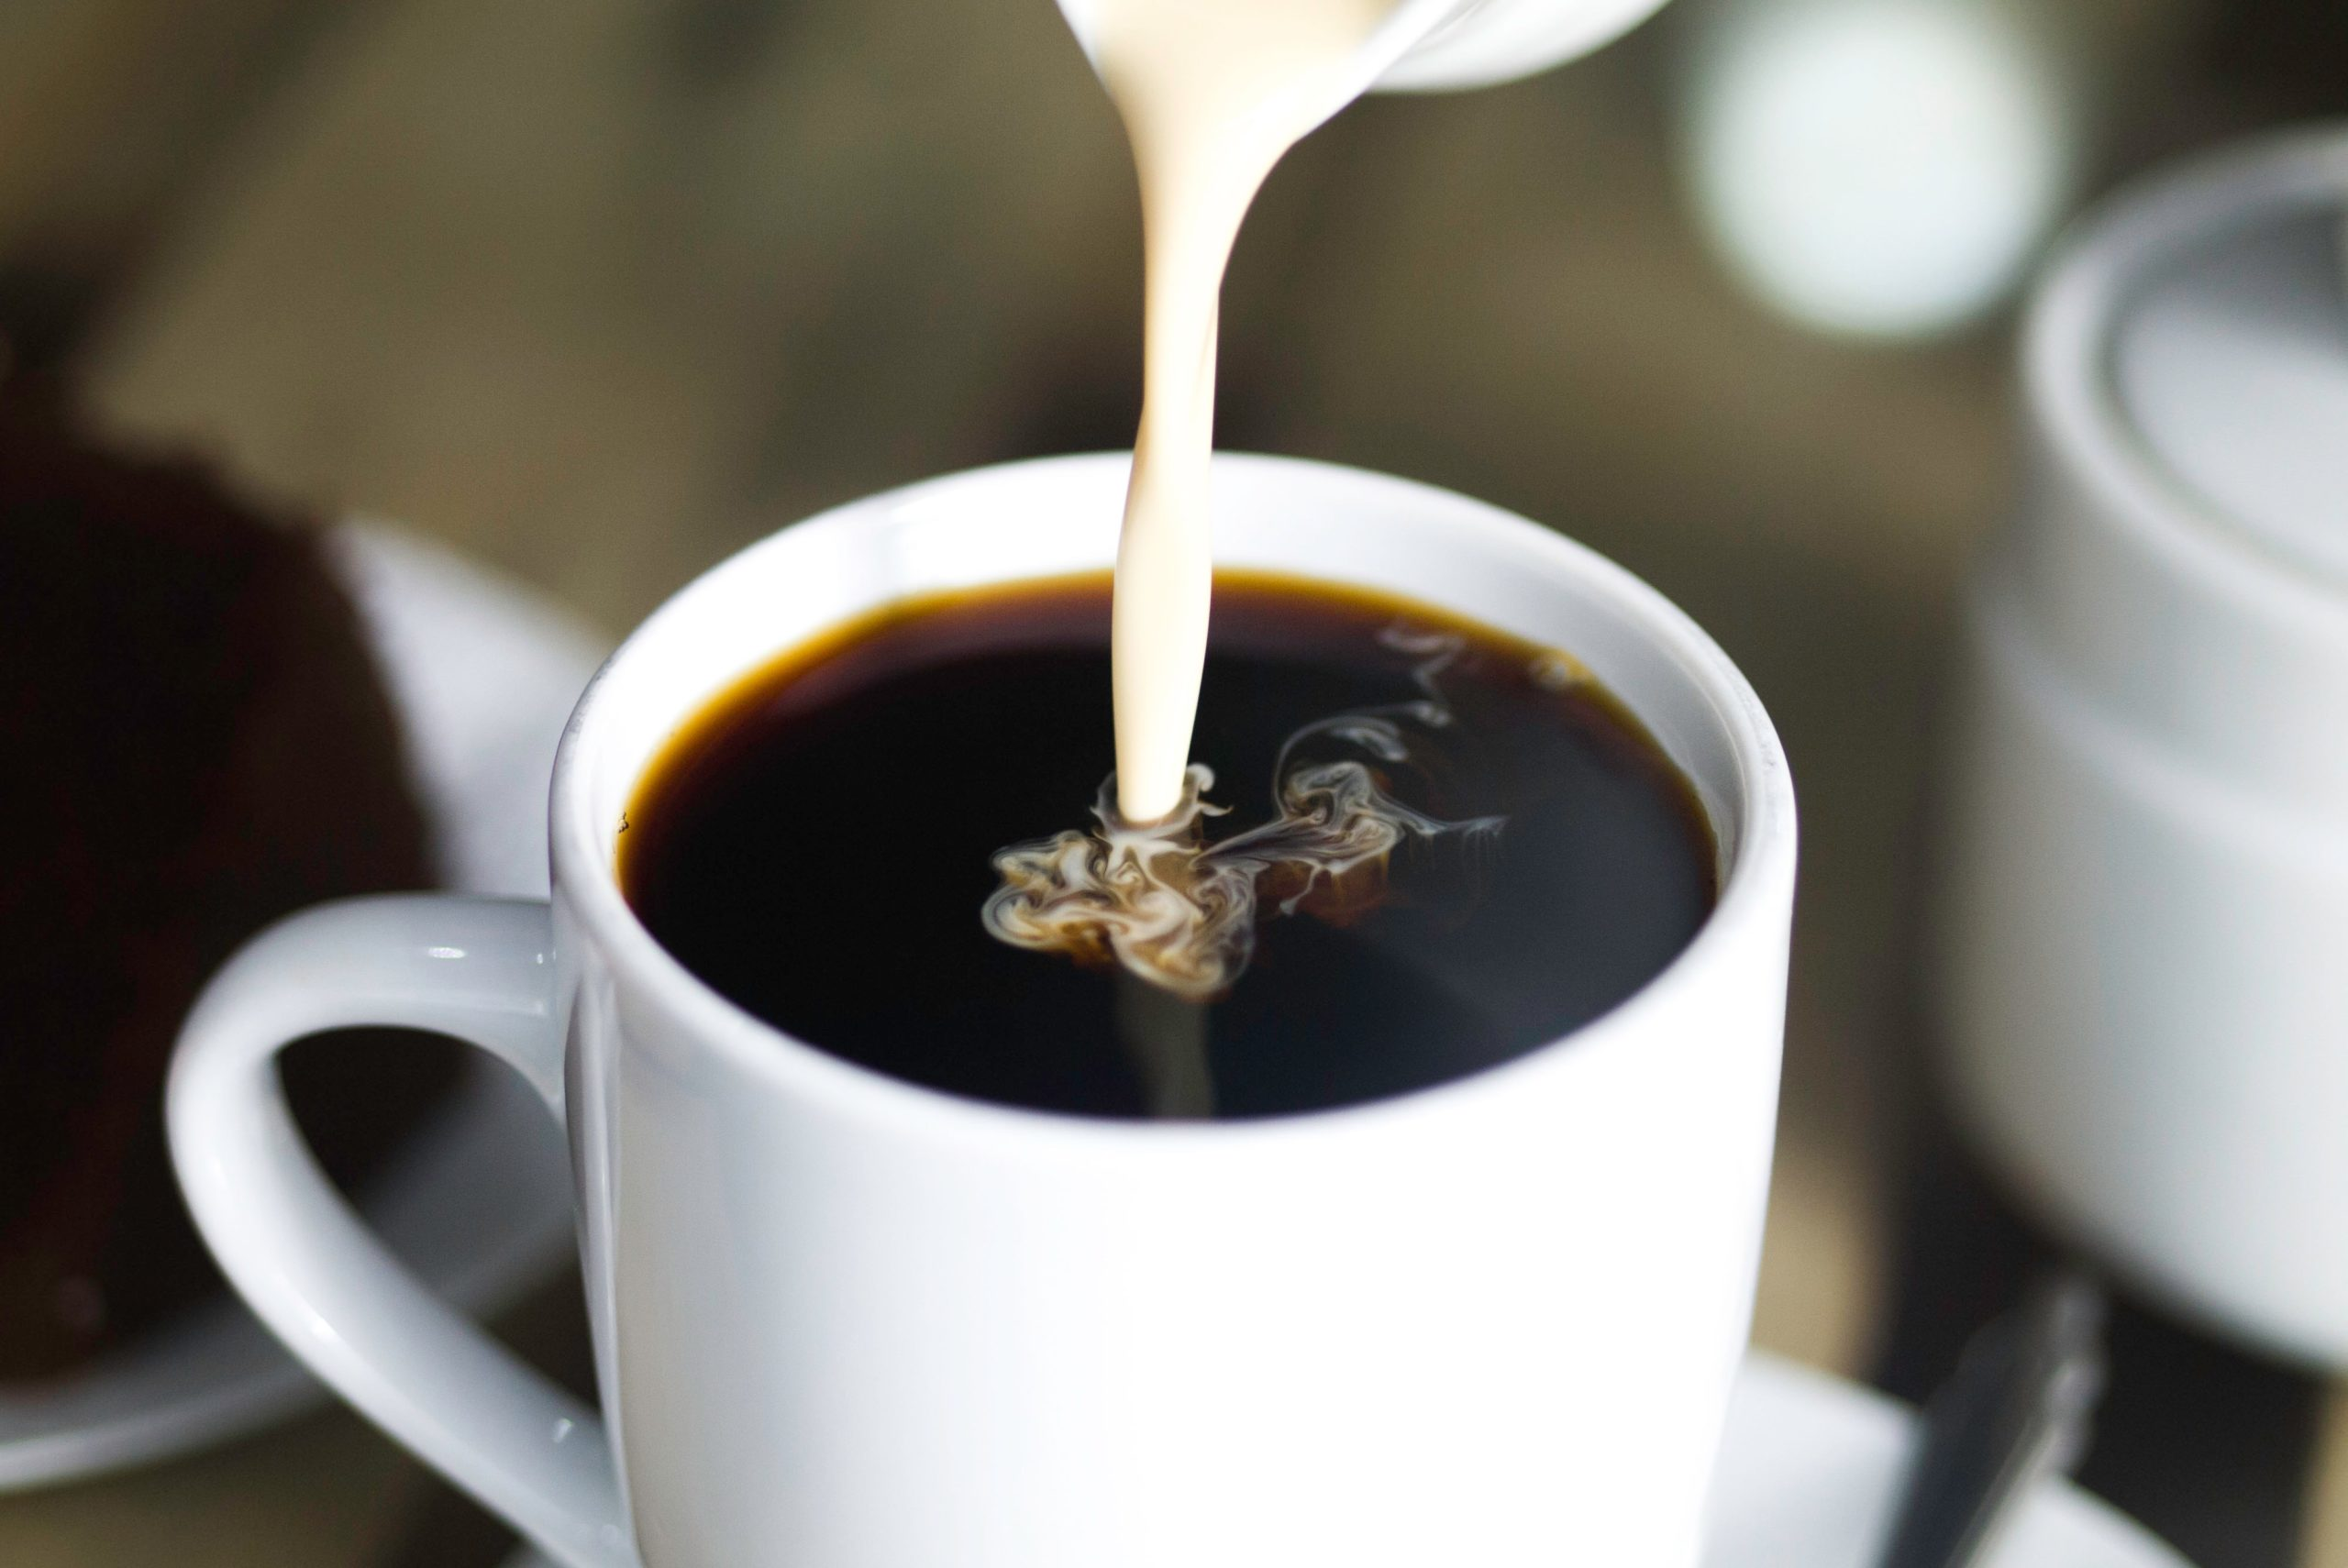 pouring milk into a cup of coffee